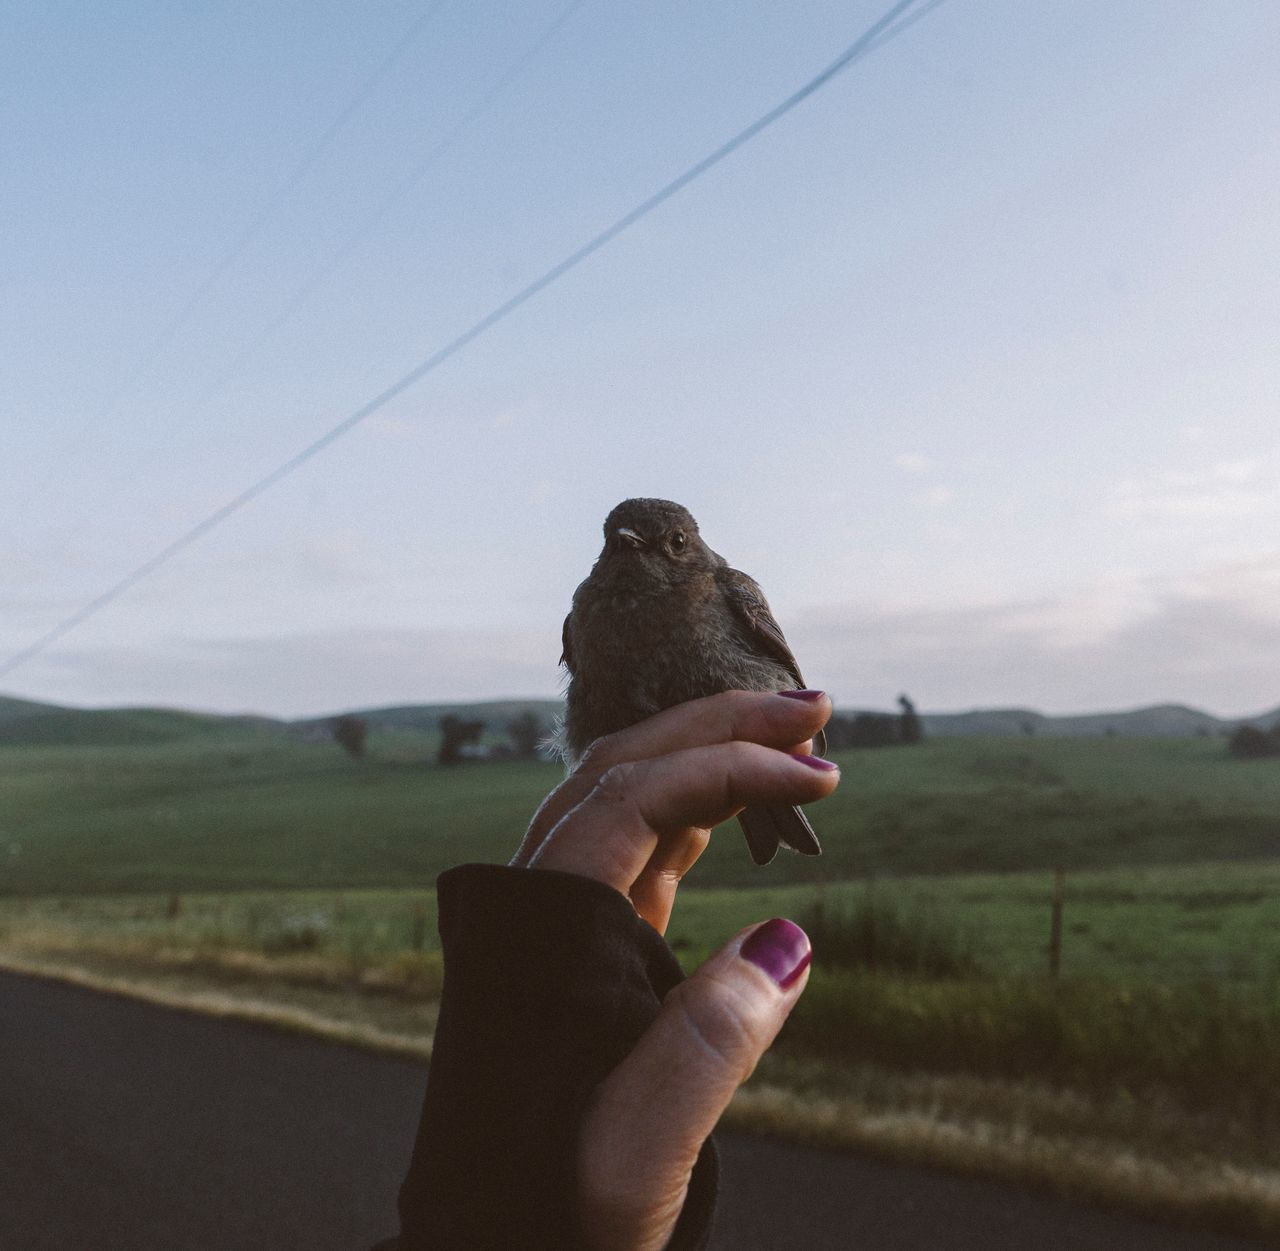 Human Hand One Person Holding Real People Human Body Part Animal Themes One Animal Day Outdoors Nature Mammal Bird Sky Perching Close-up People Rural Poetry Place Of Heart